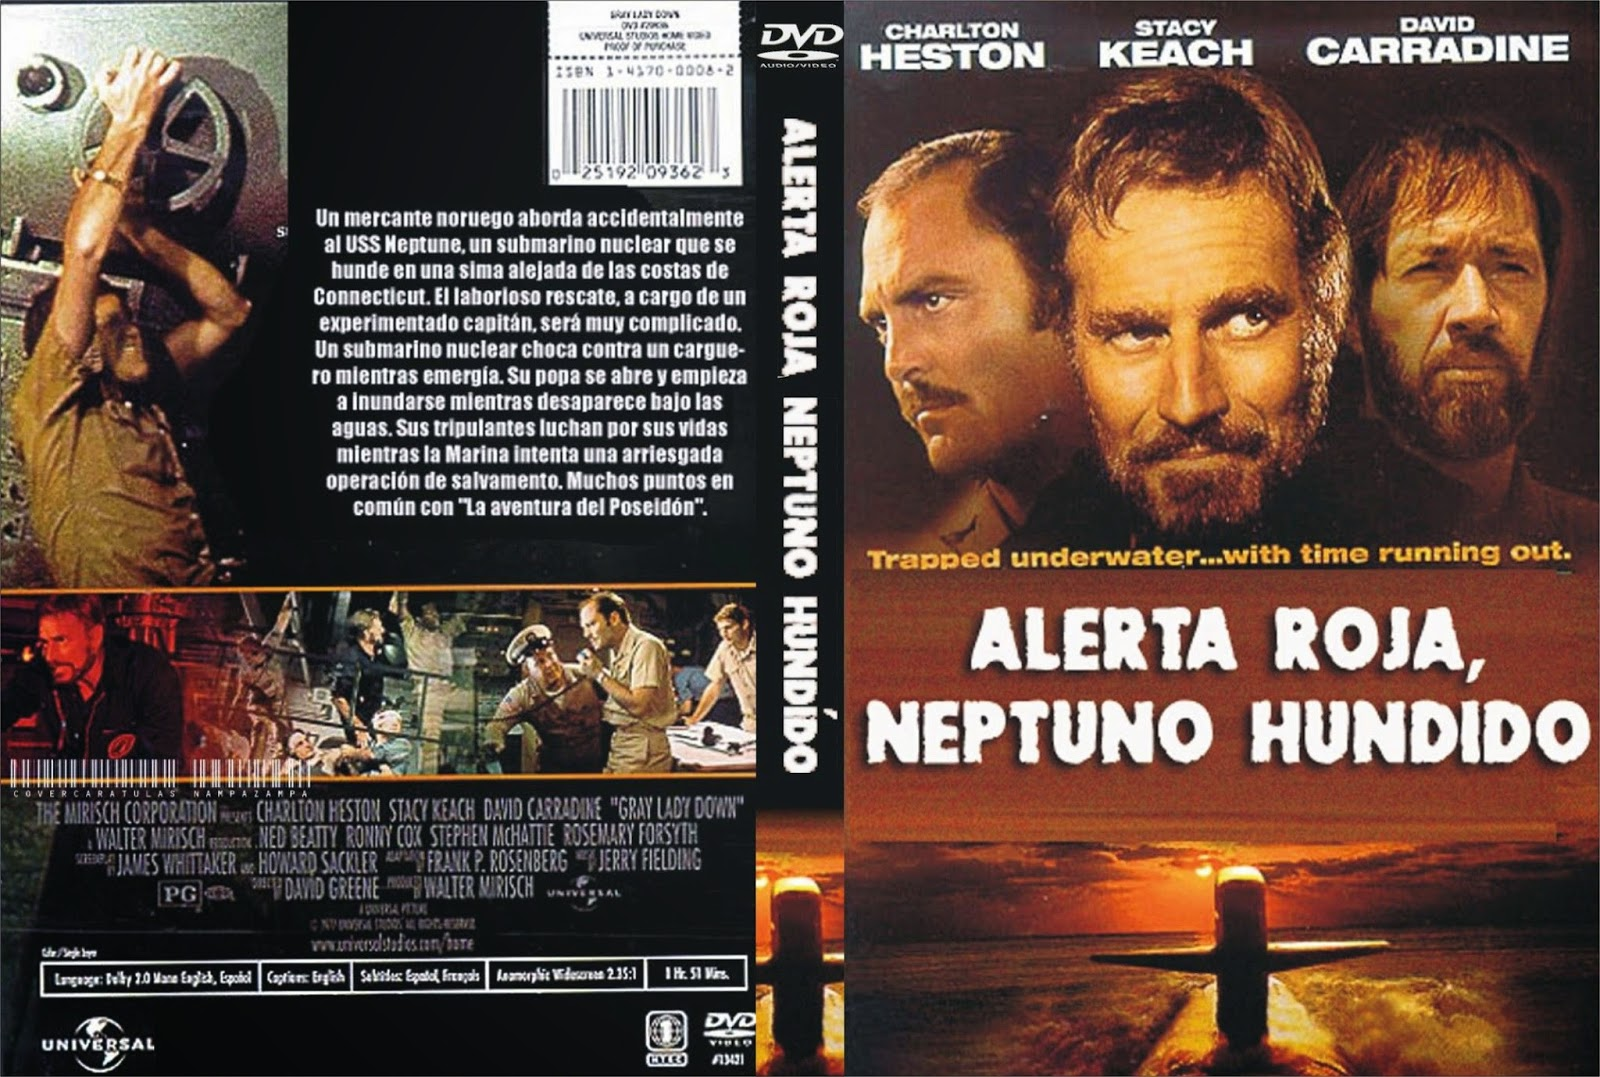 Neptuno hundido (1978 - Gray Lady Down)